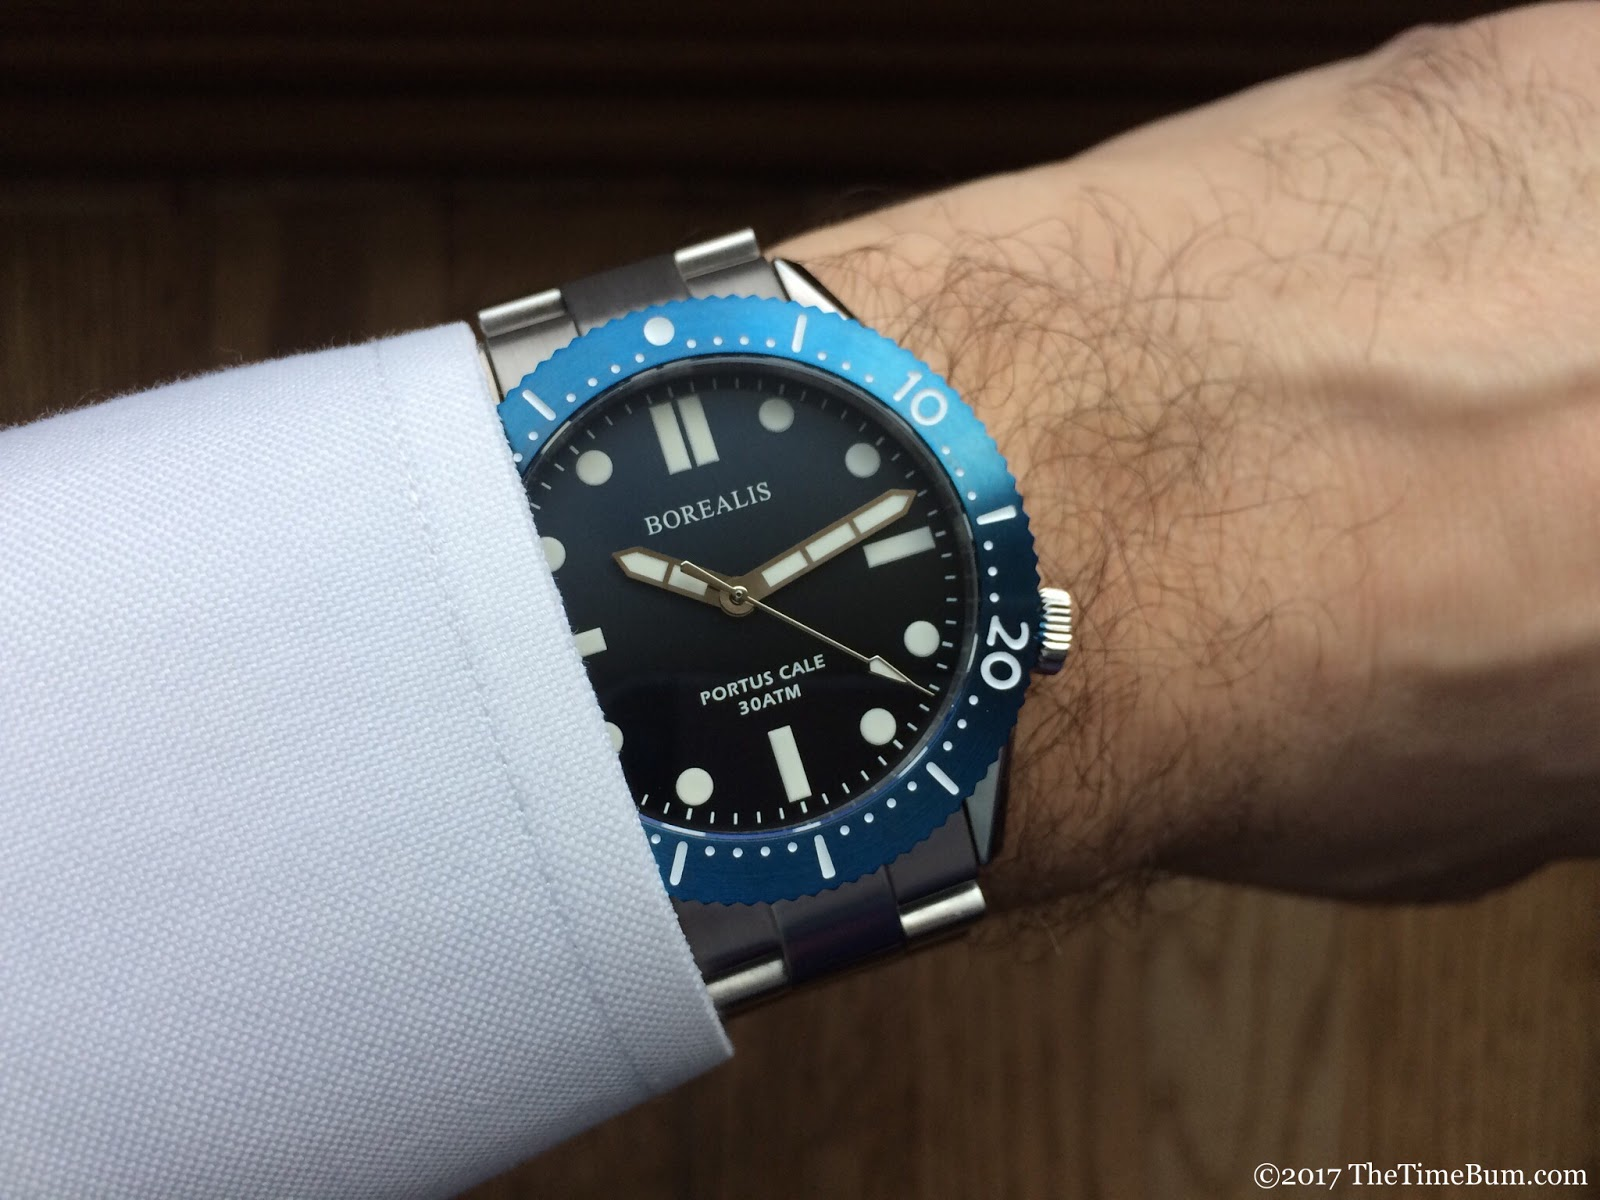 Borealis Portus Cale blue Fade to Black wrist shot